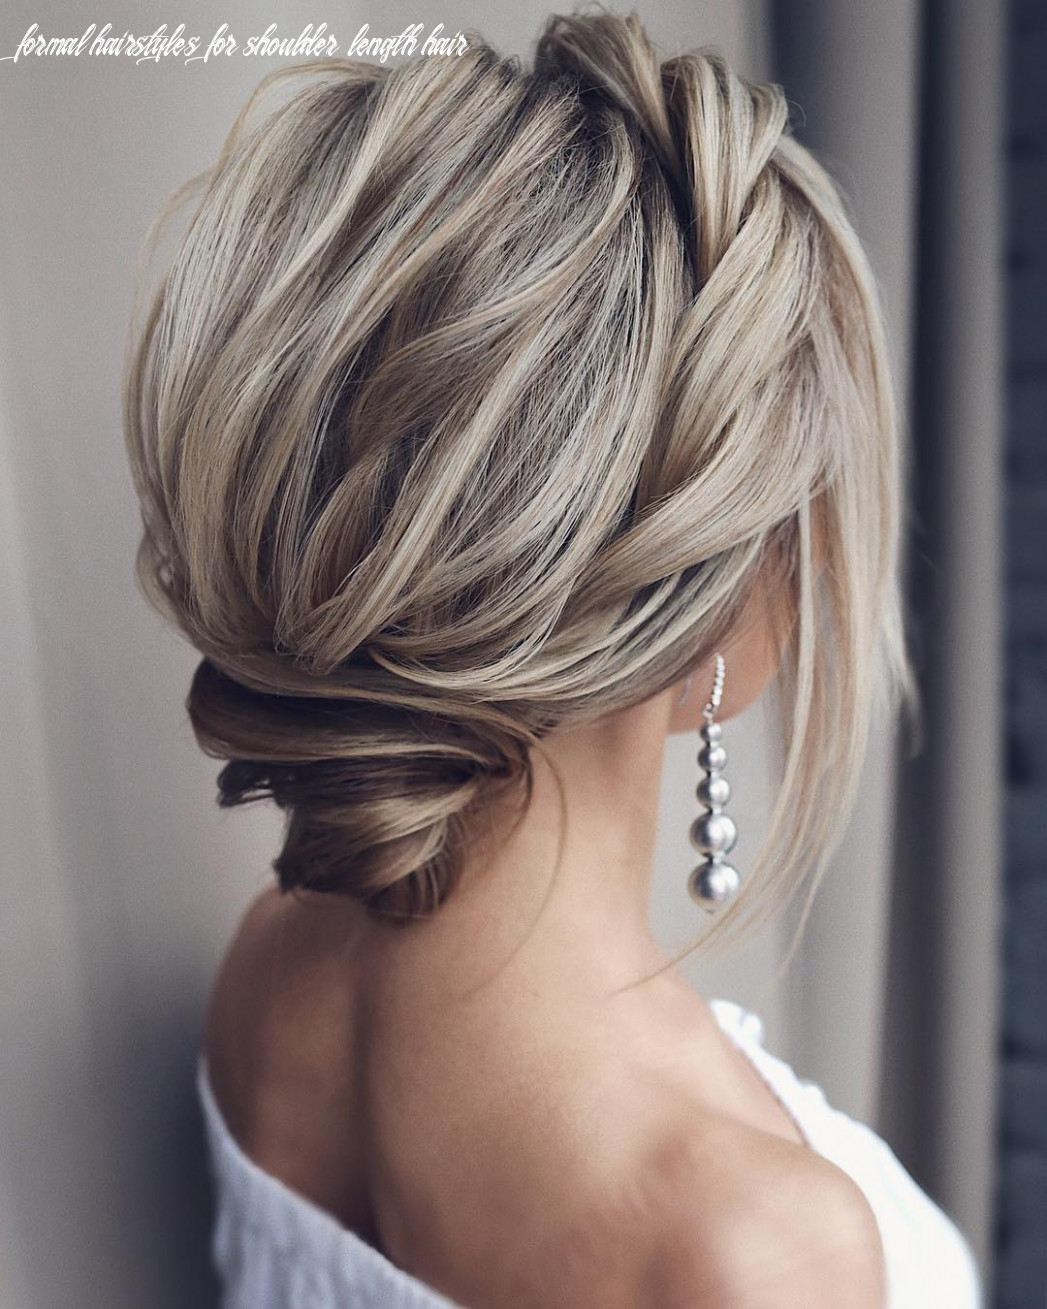 Best Updo Hairstyles for Medium Length Hair, Prom and Homecoming ...